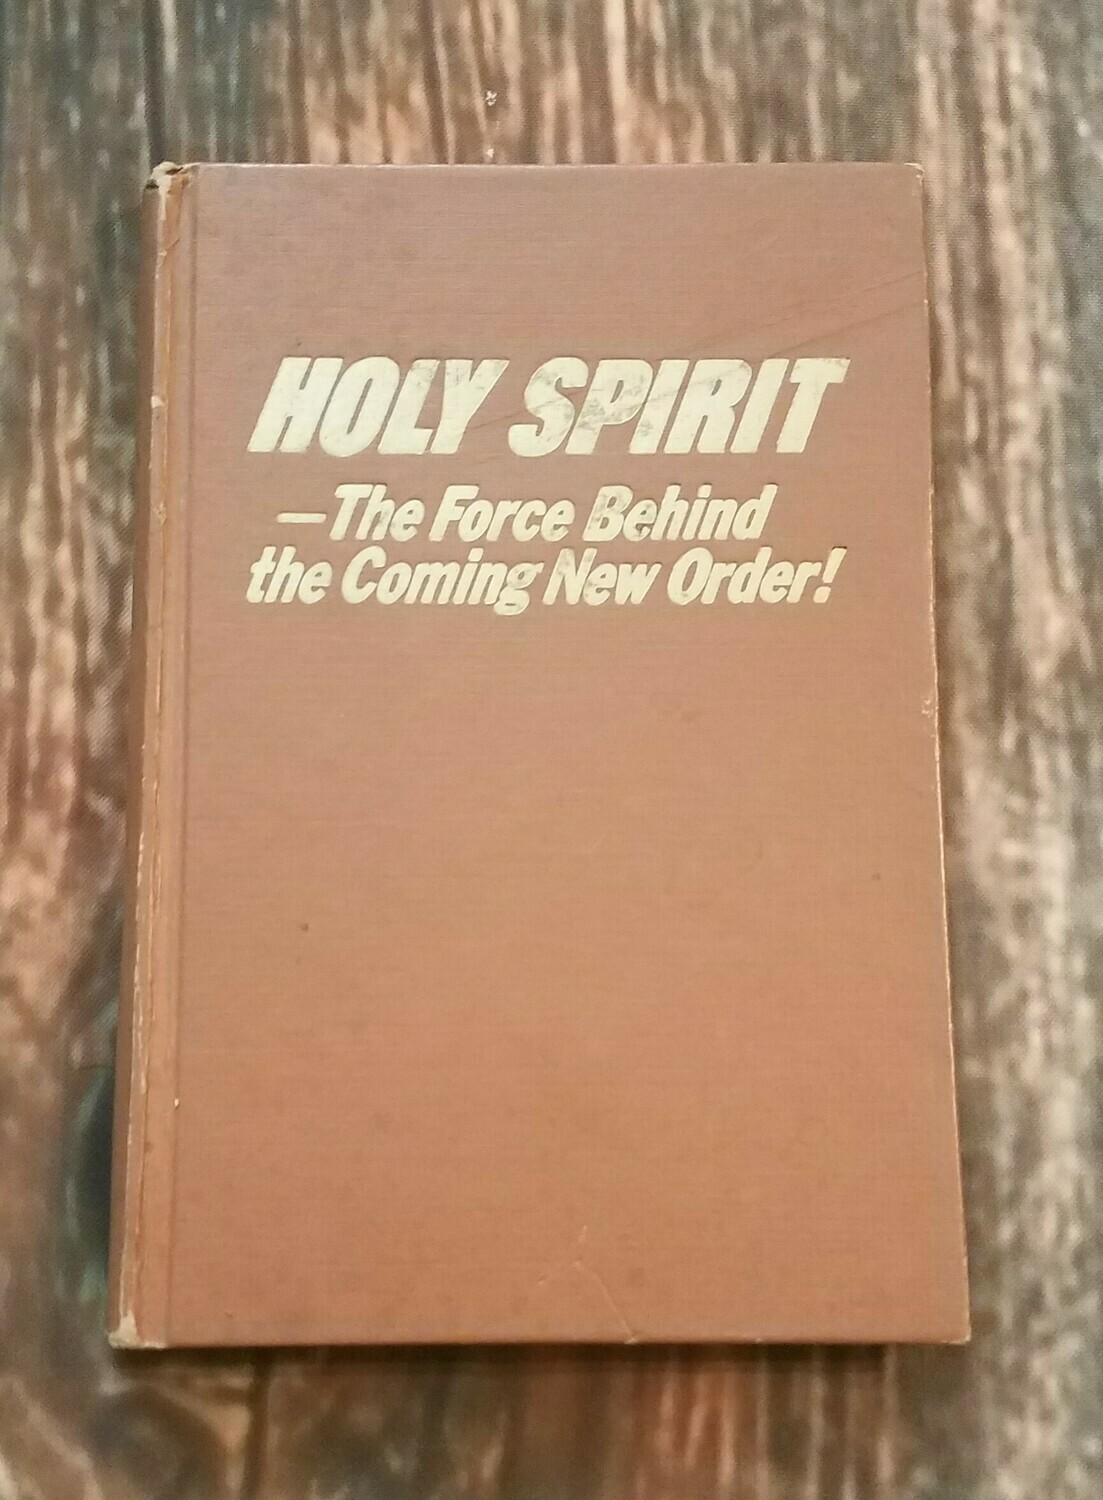 Holy Spirit: The Force Behind the Coming New Order! by Watch Tower Bible and Tract Society of Pennsylvania